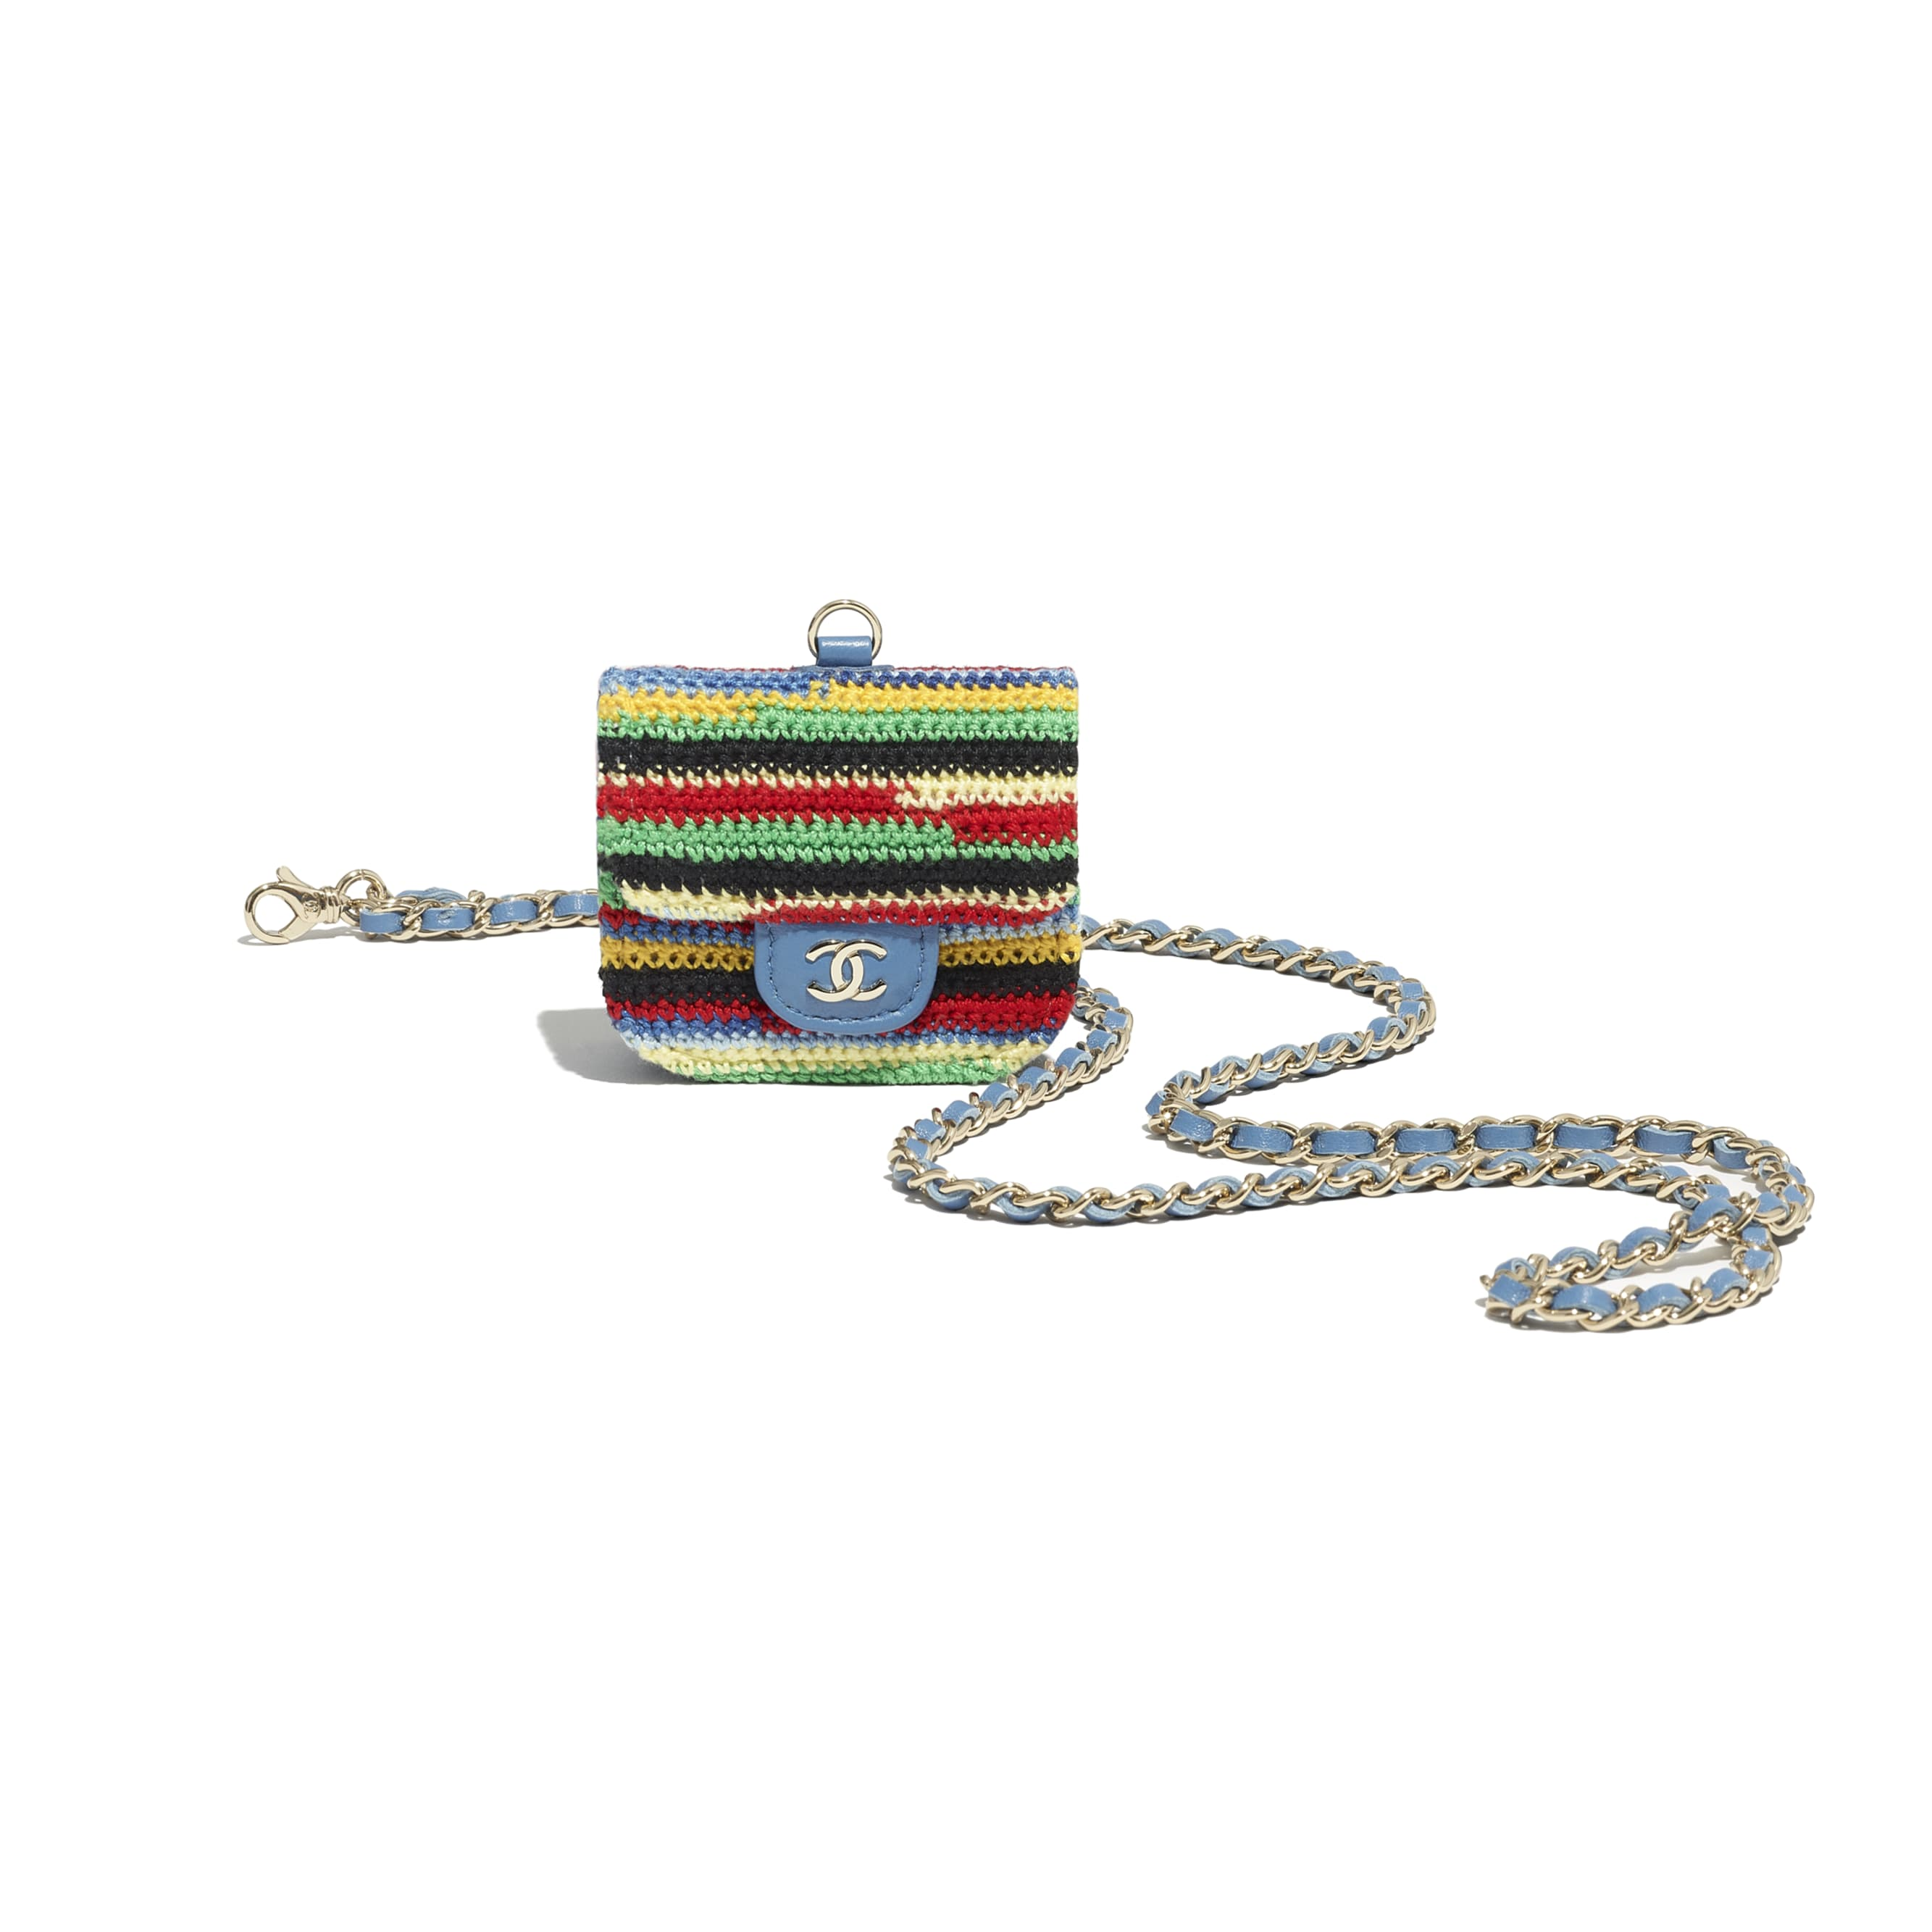 AirPods Pro Case - Multicolour - Embroidered Crochet & Gold-Tone Metal - CHANEL - Extra view - see standard sized version